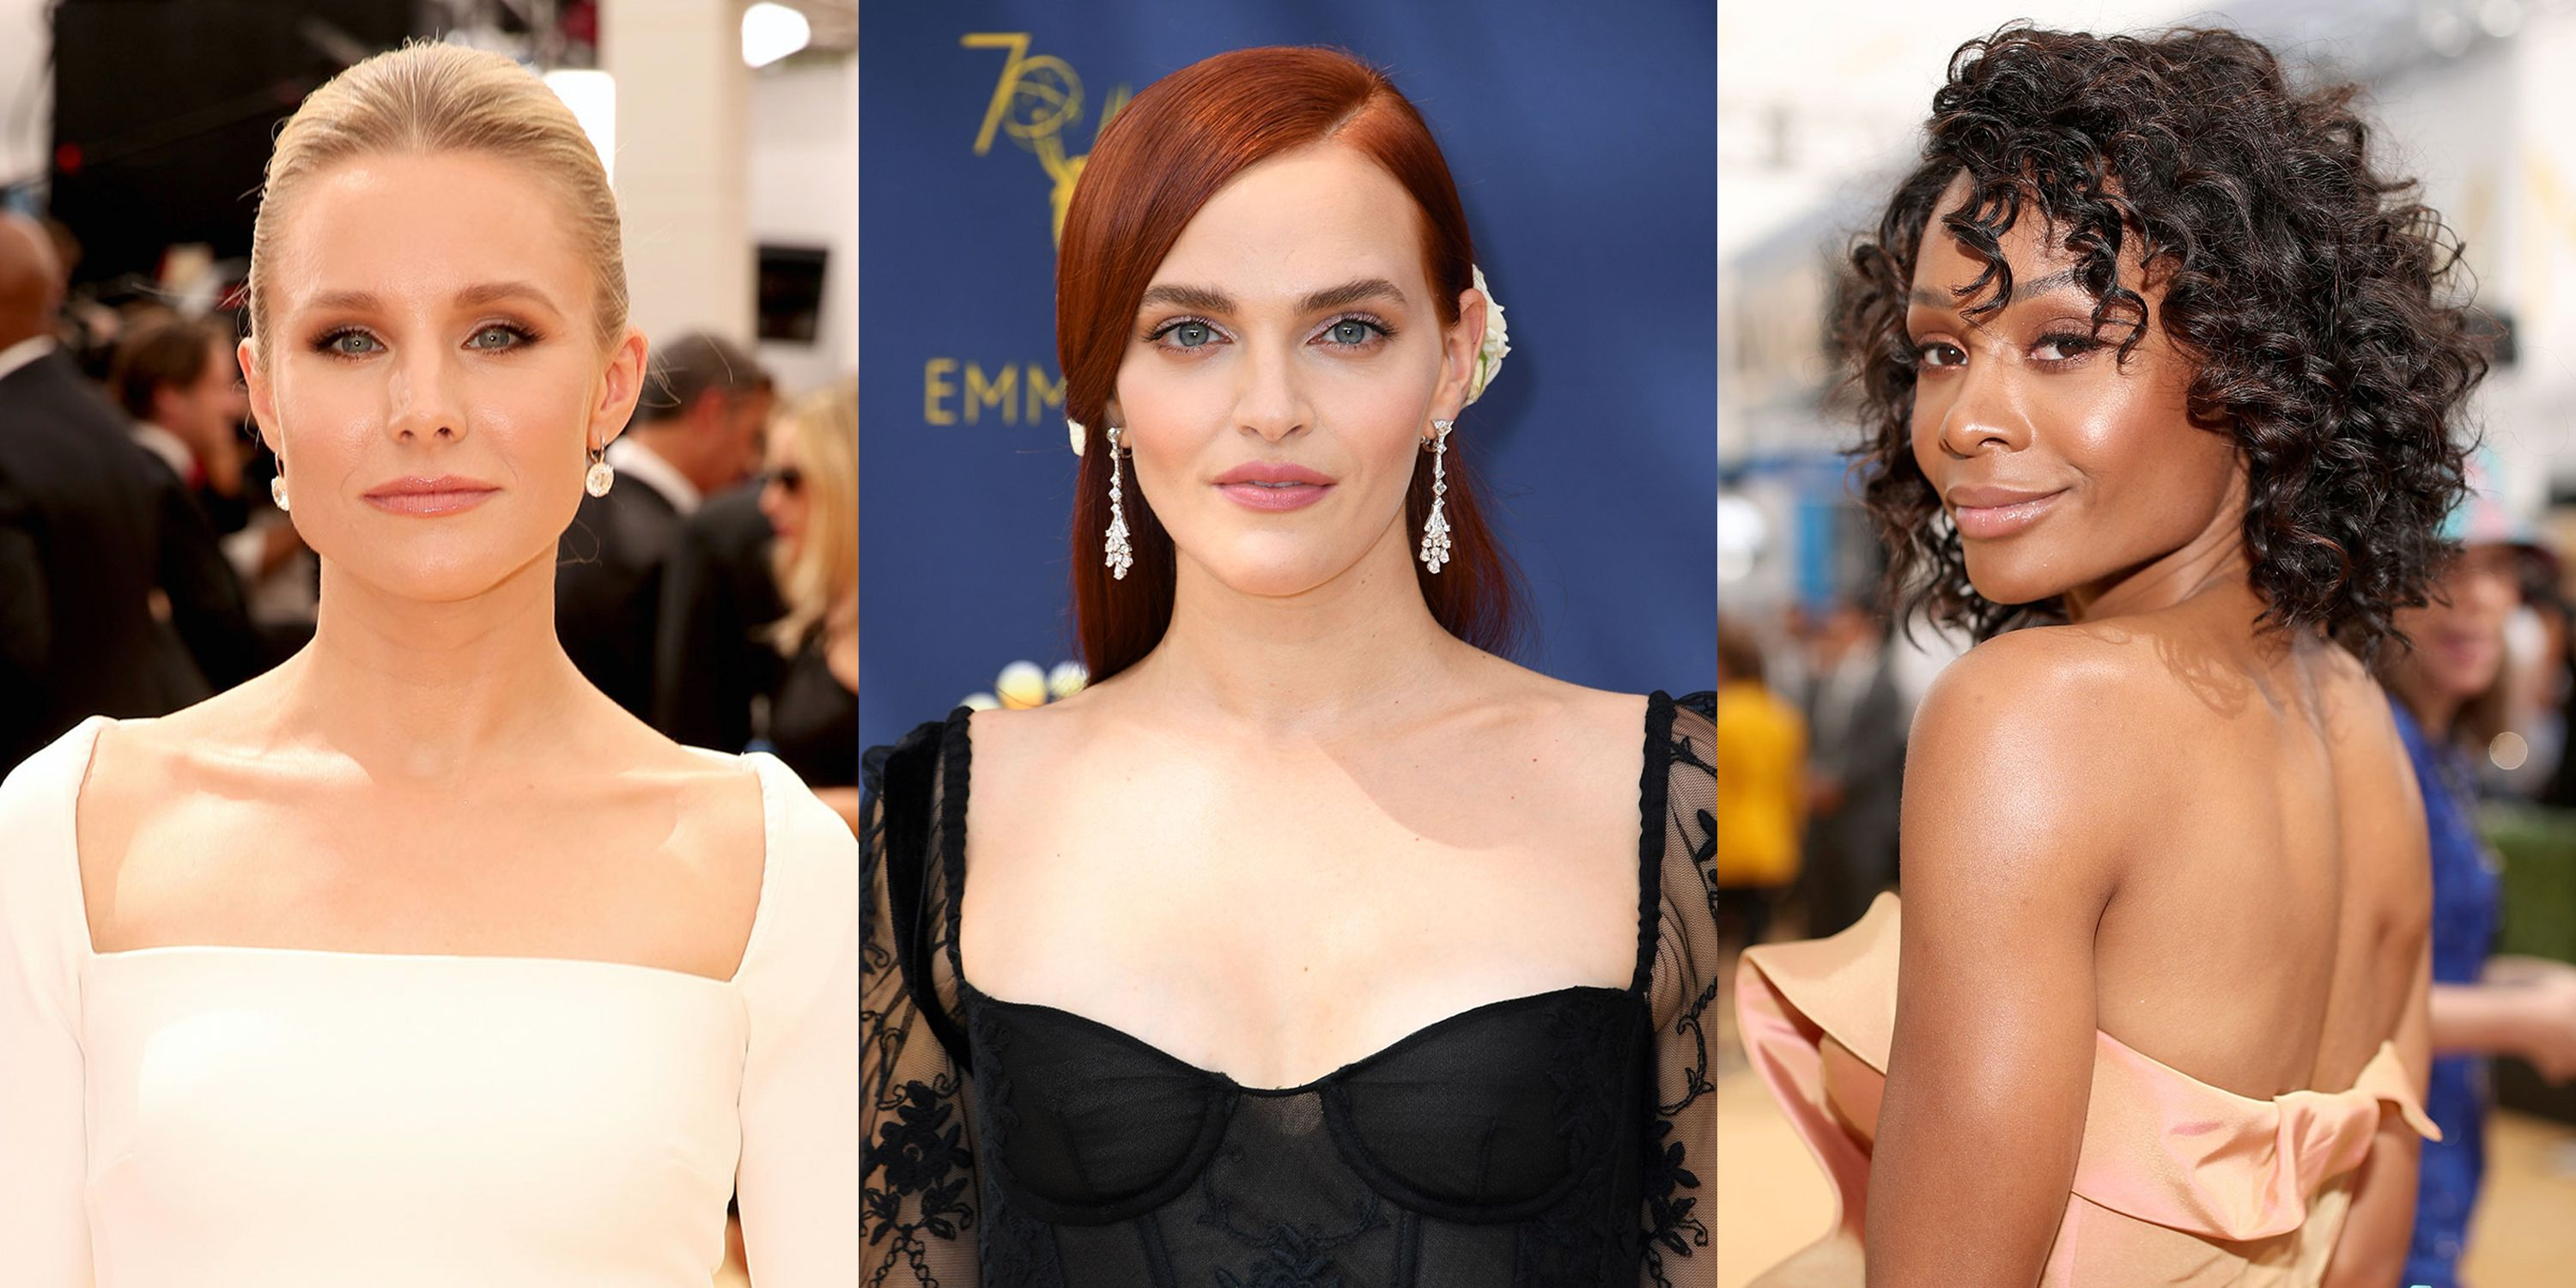 The Absolute Best Beauty Looks of the 2018 Emmys